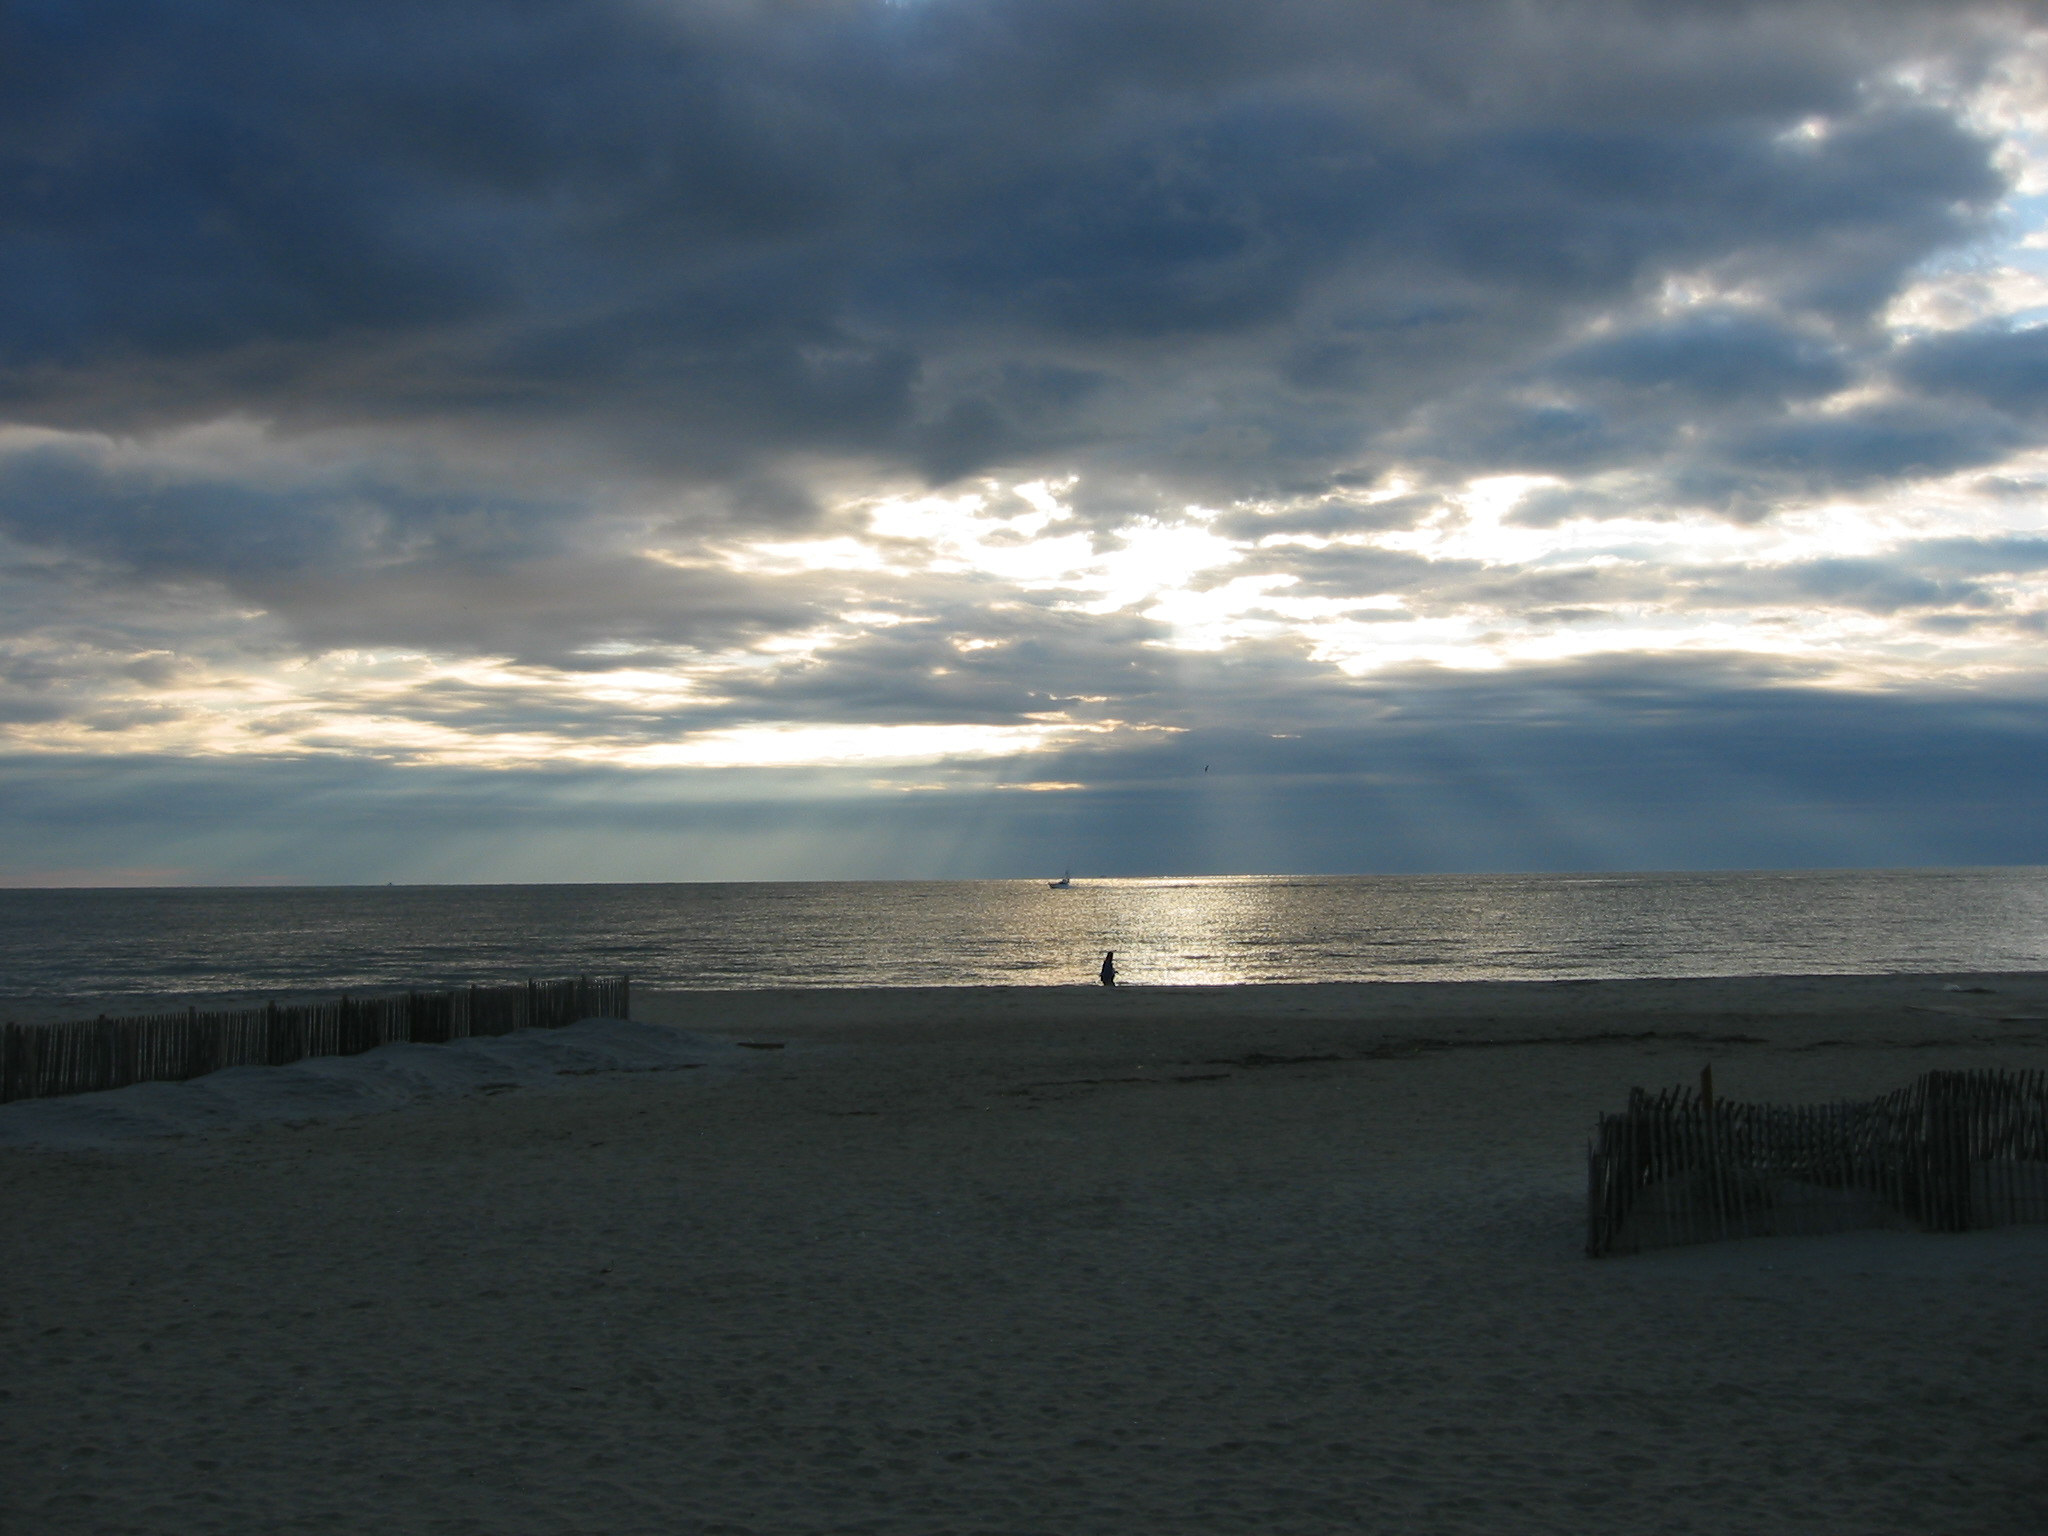 Ocean Grove, New Jersey. By Paul Goldfinger. © 2010